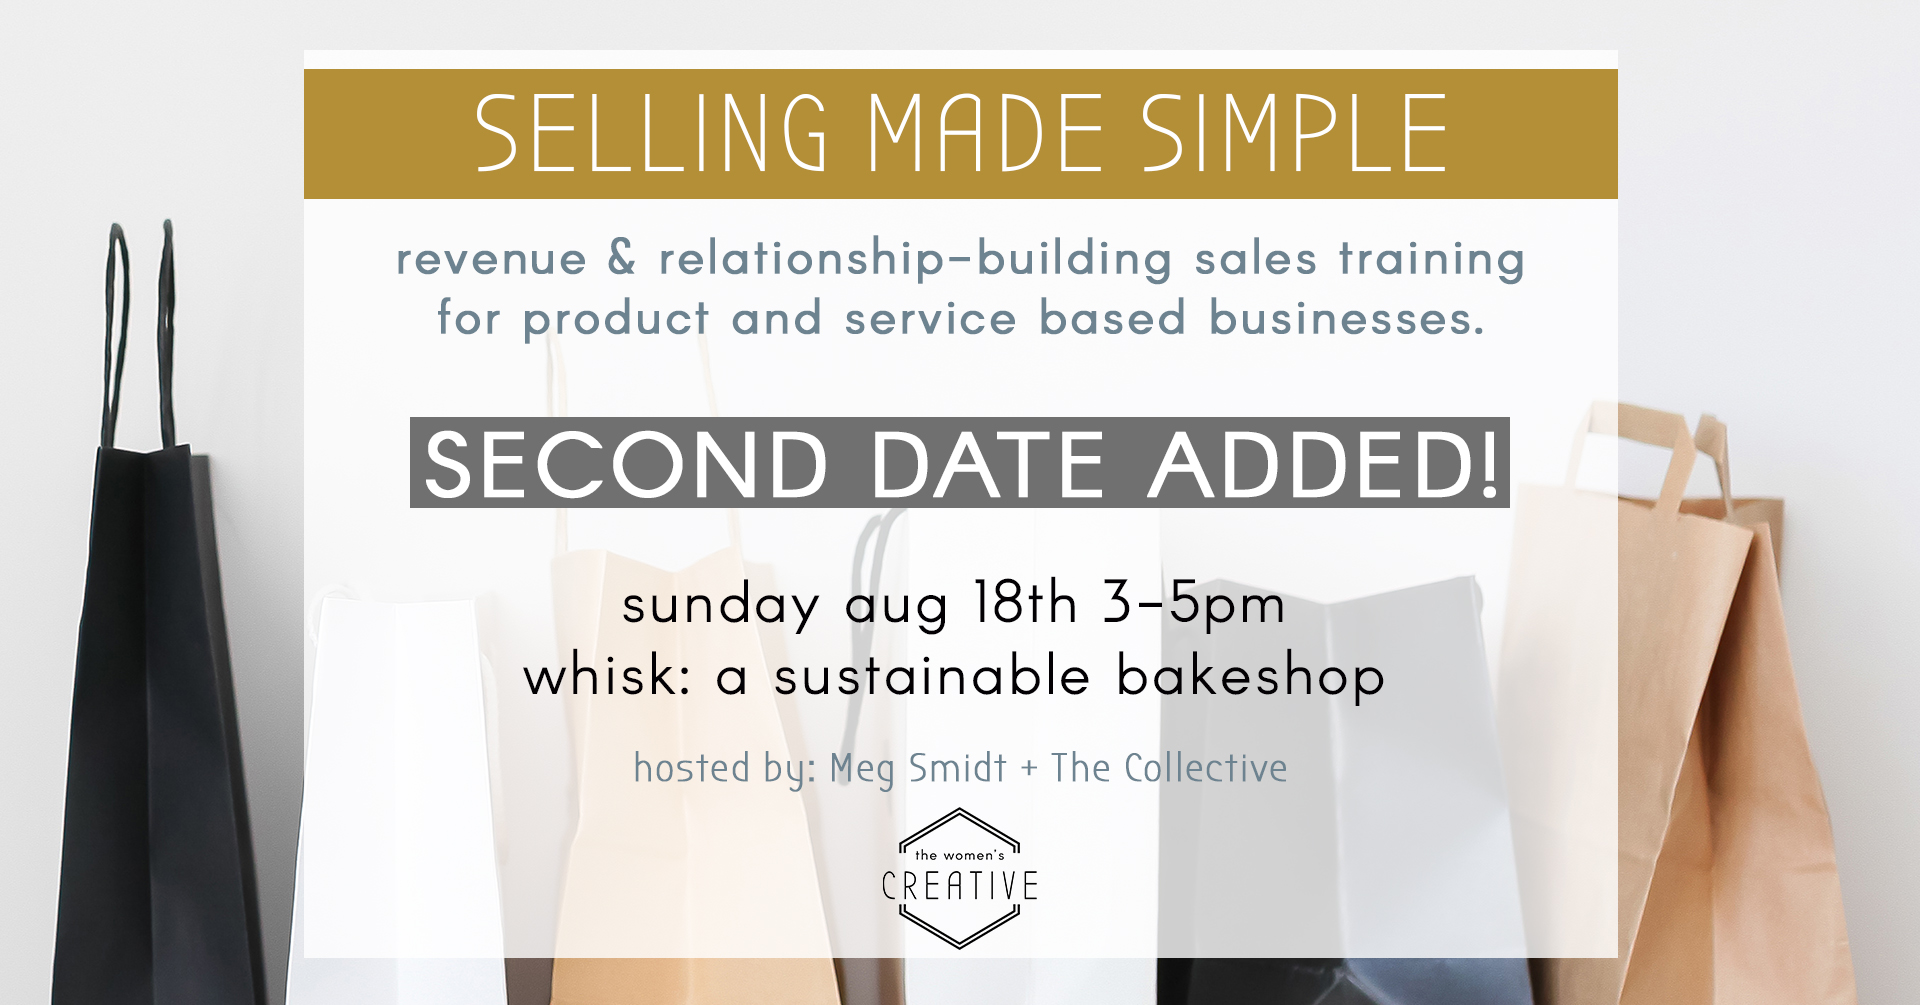 Sales WORKSHOP 2ND DATE the women's creative